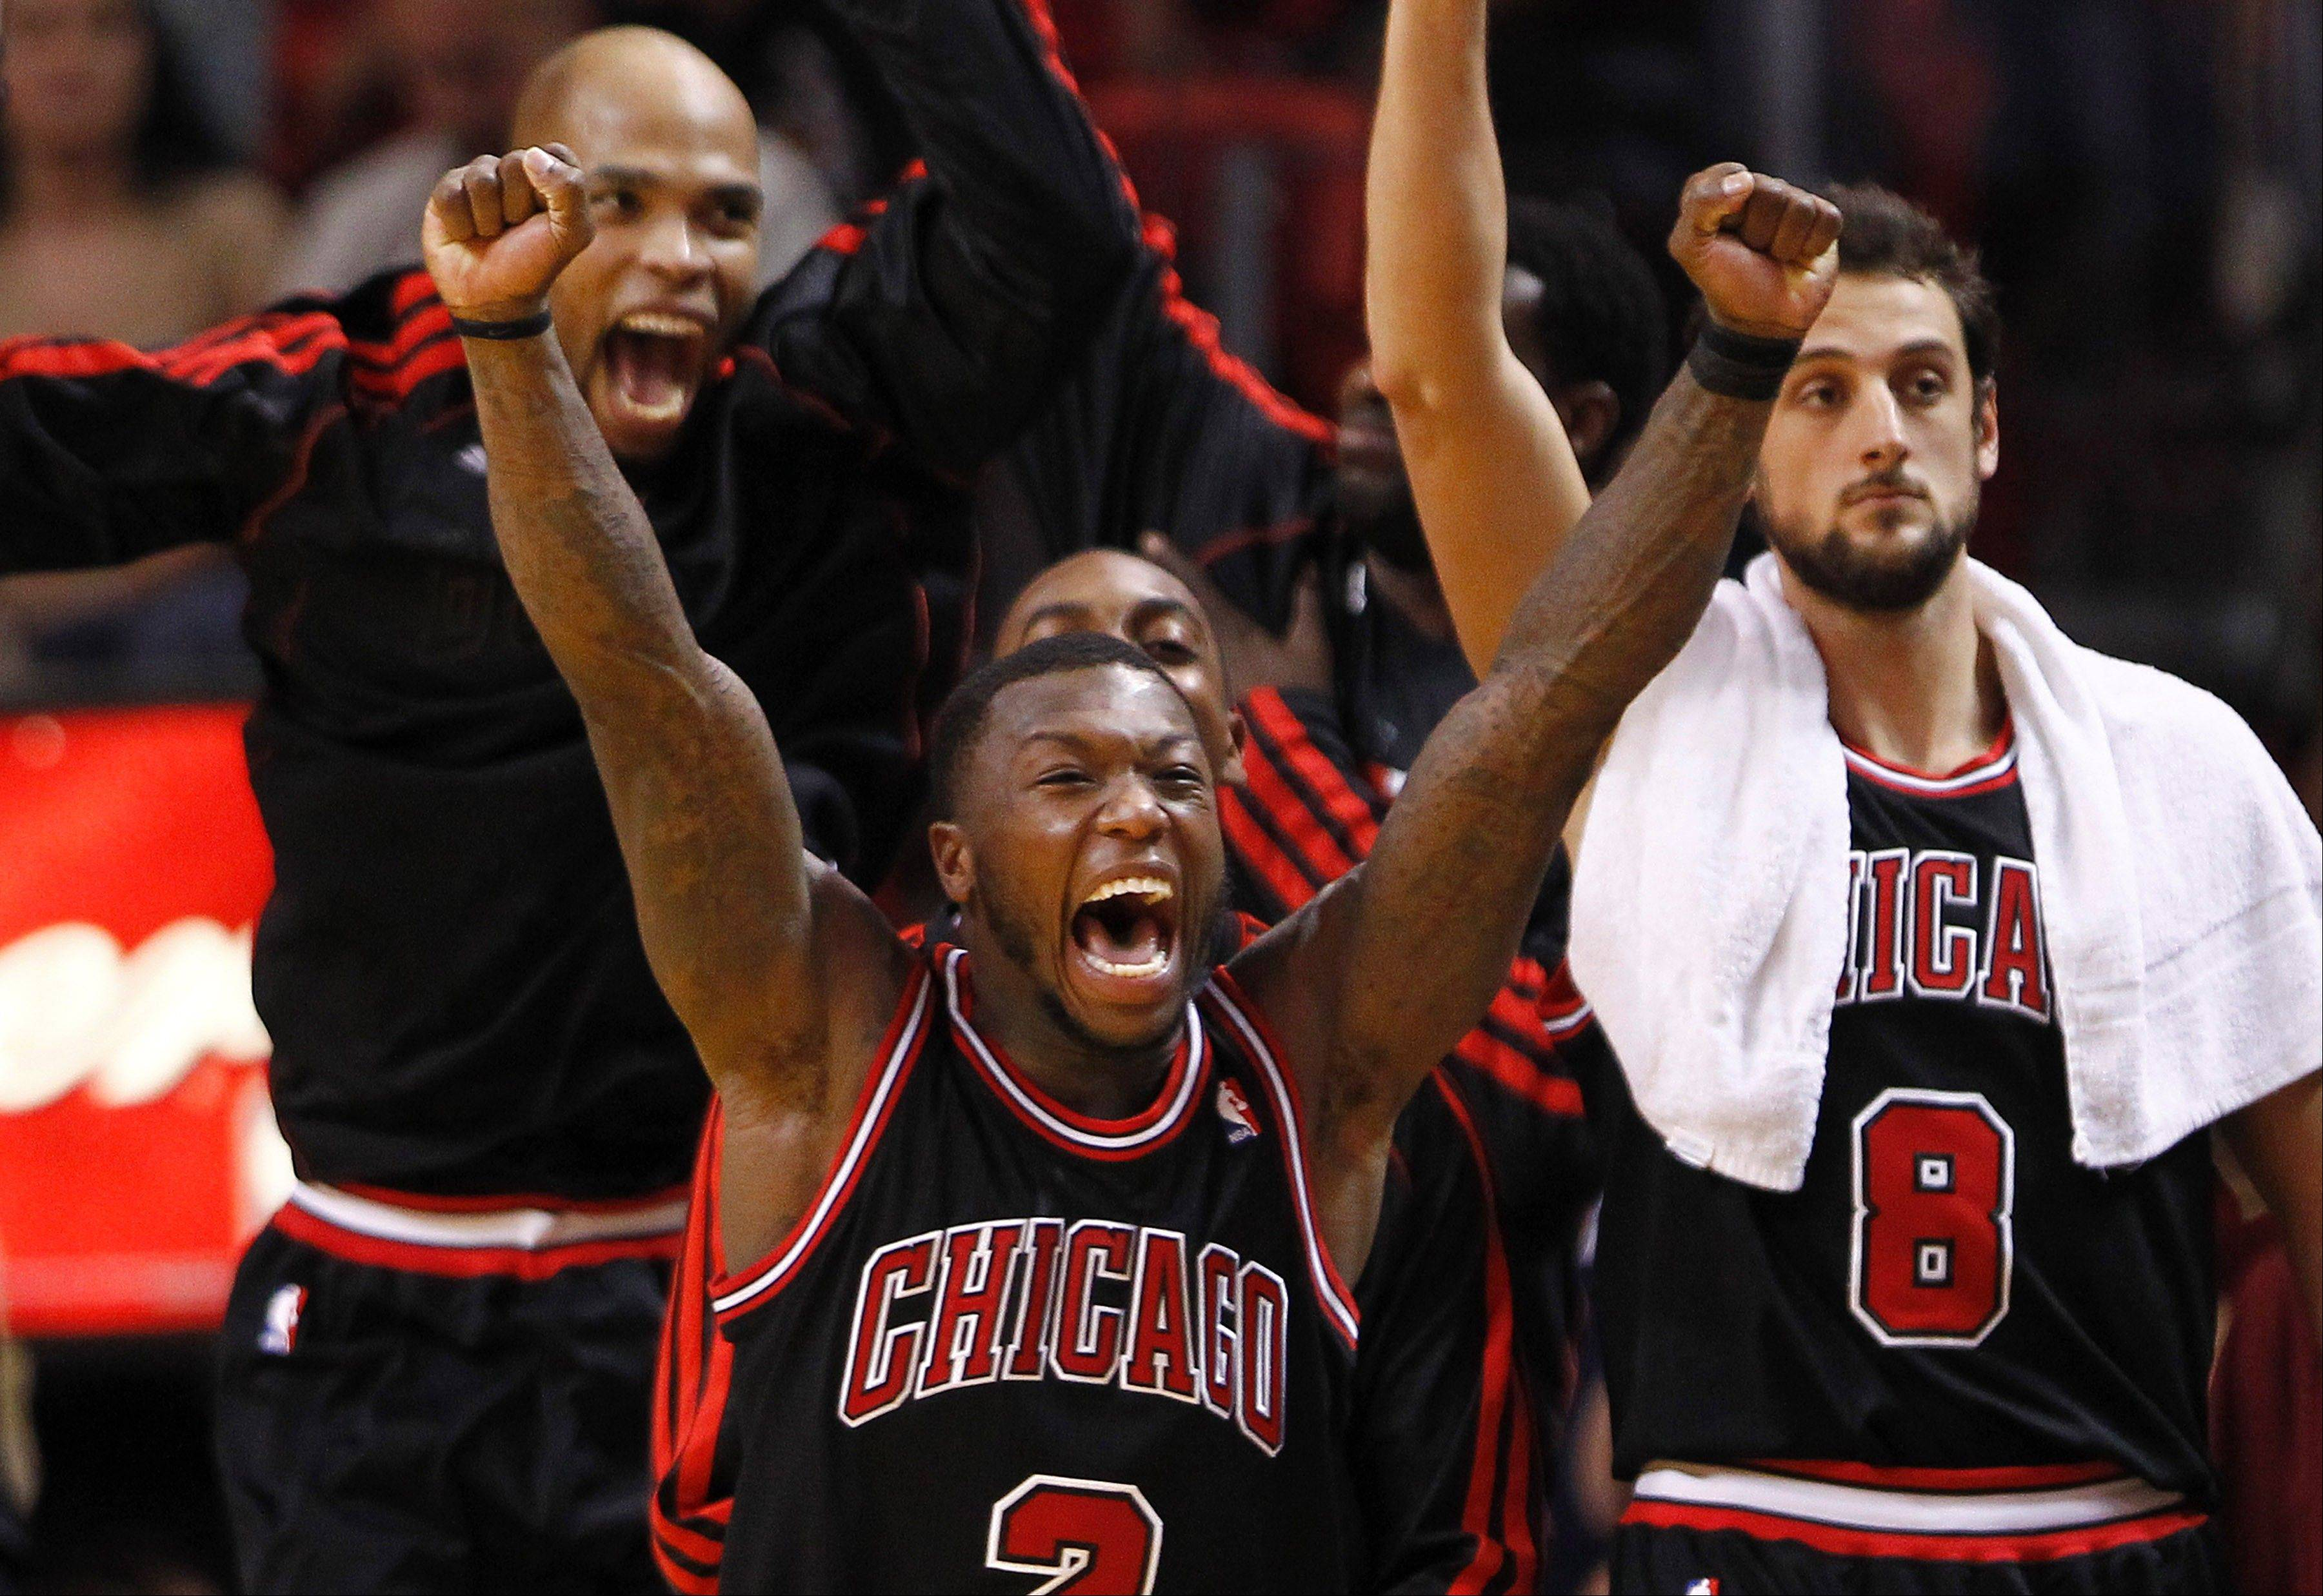 The Bulls' Nate Robinson and his teammates celebrate after beat the Miami Heat on Jan. 4 in Miami.